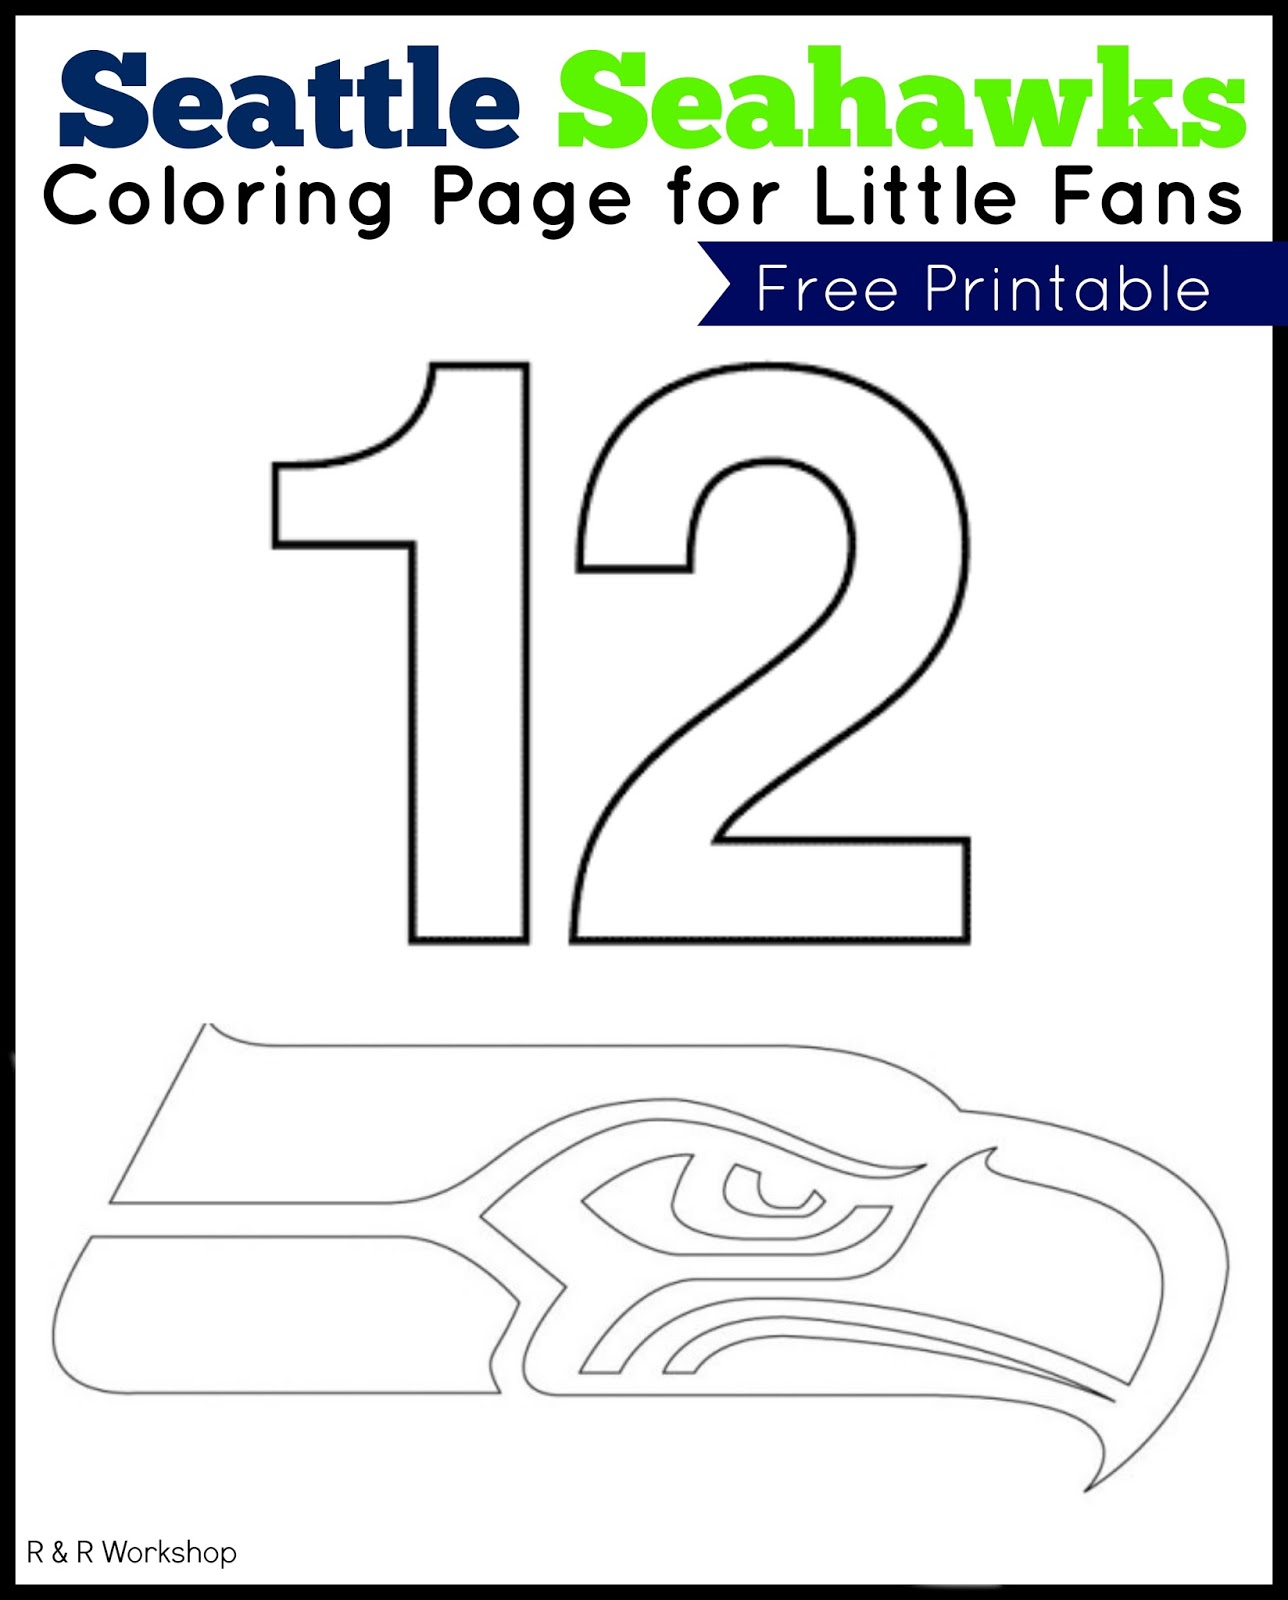 r amp r workshop seattle seahawks don 39 t eat pete game printable